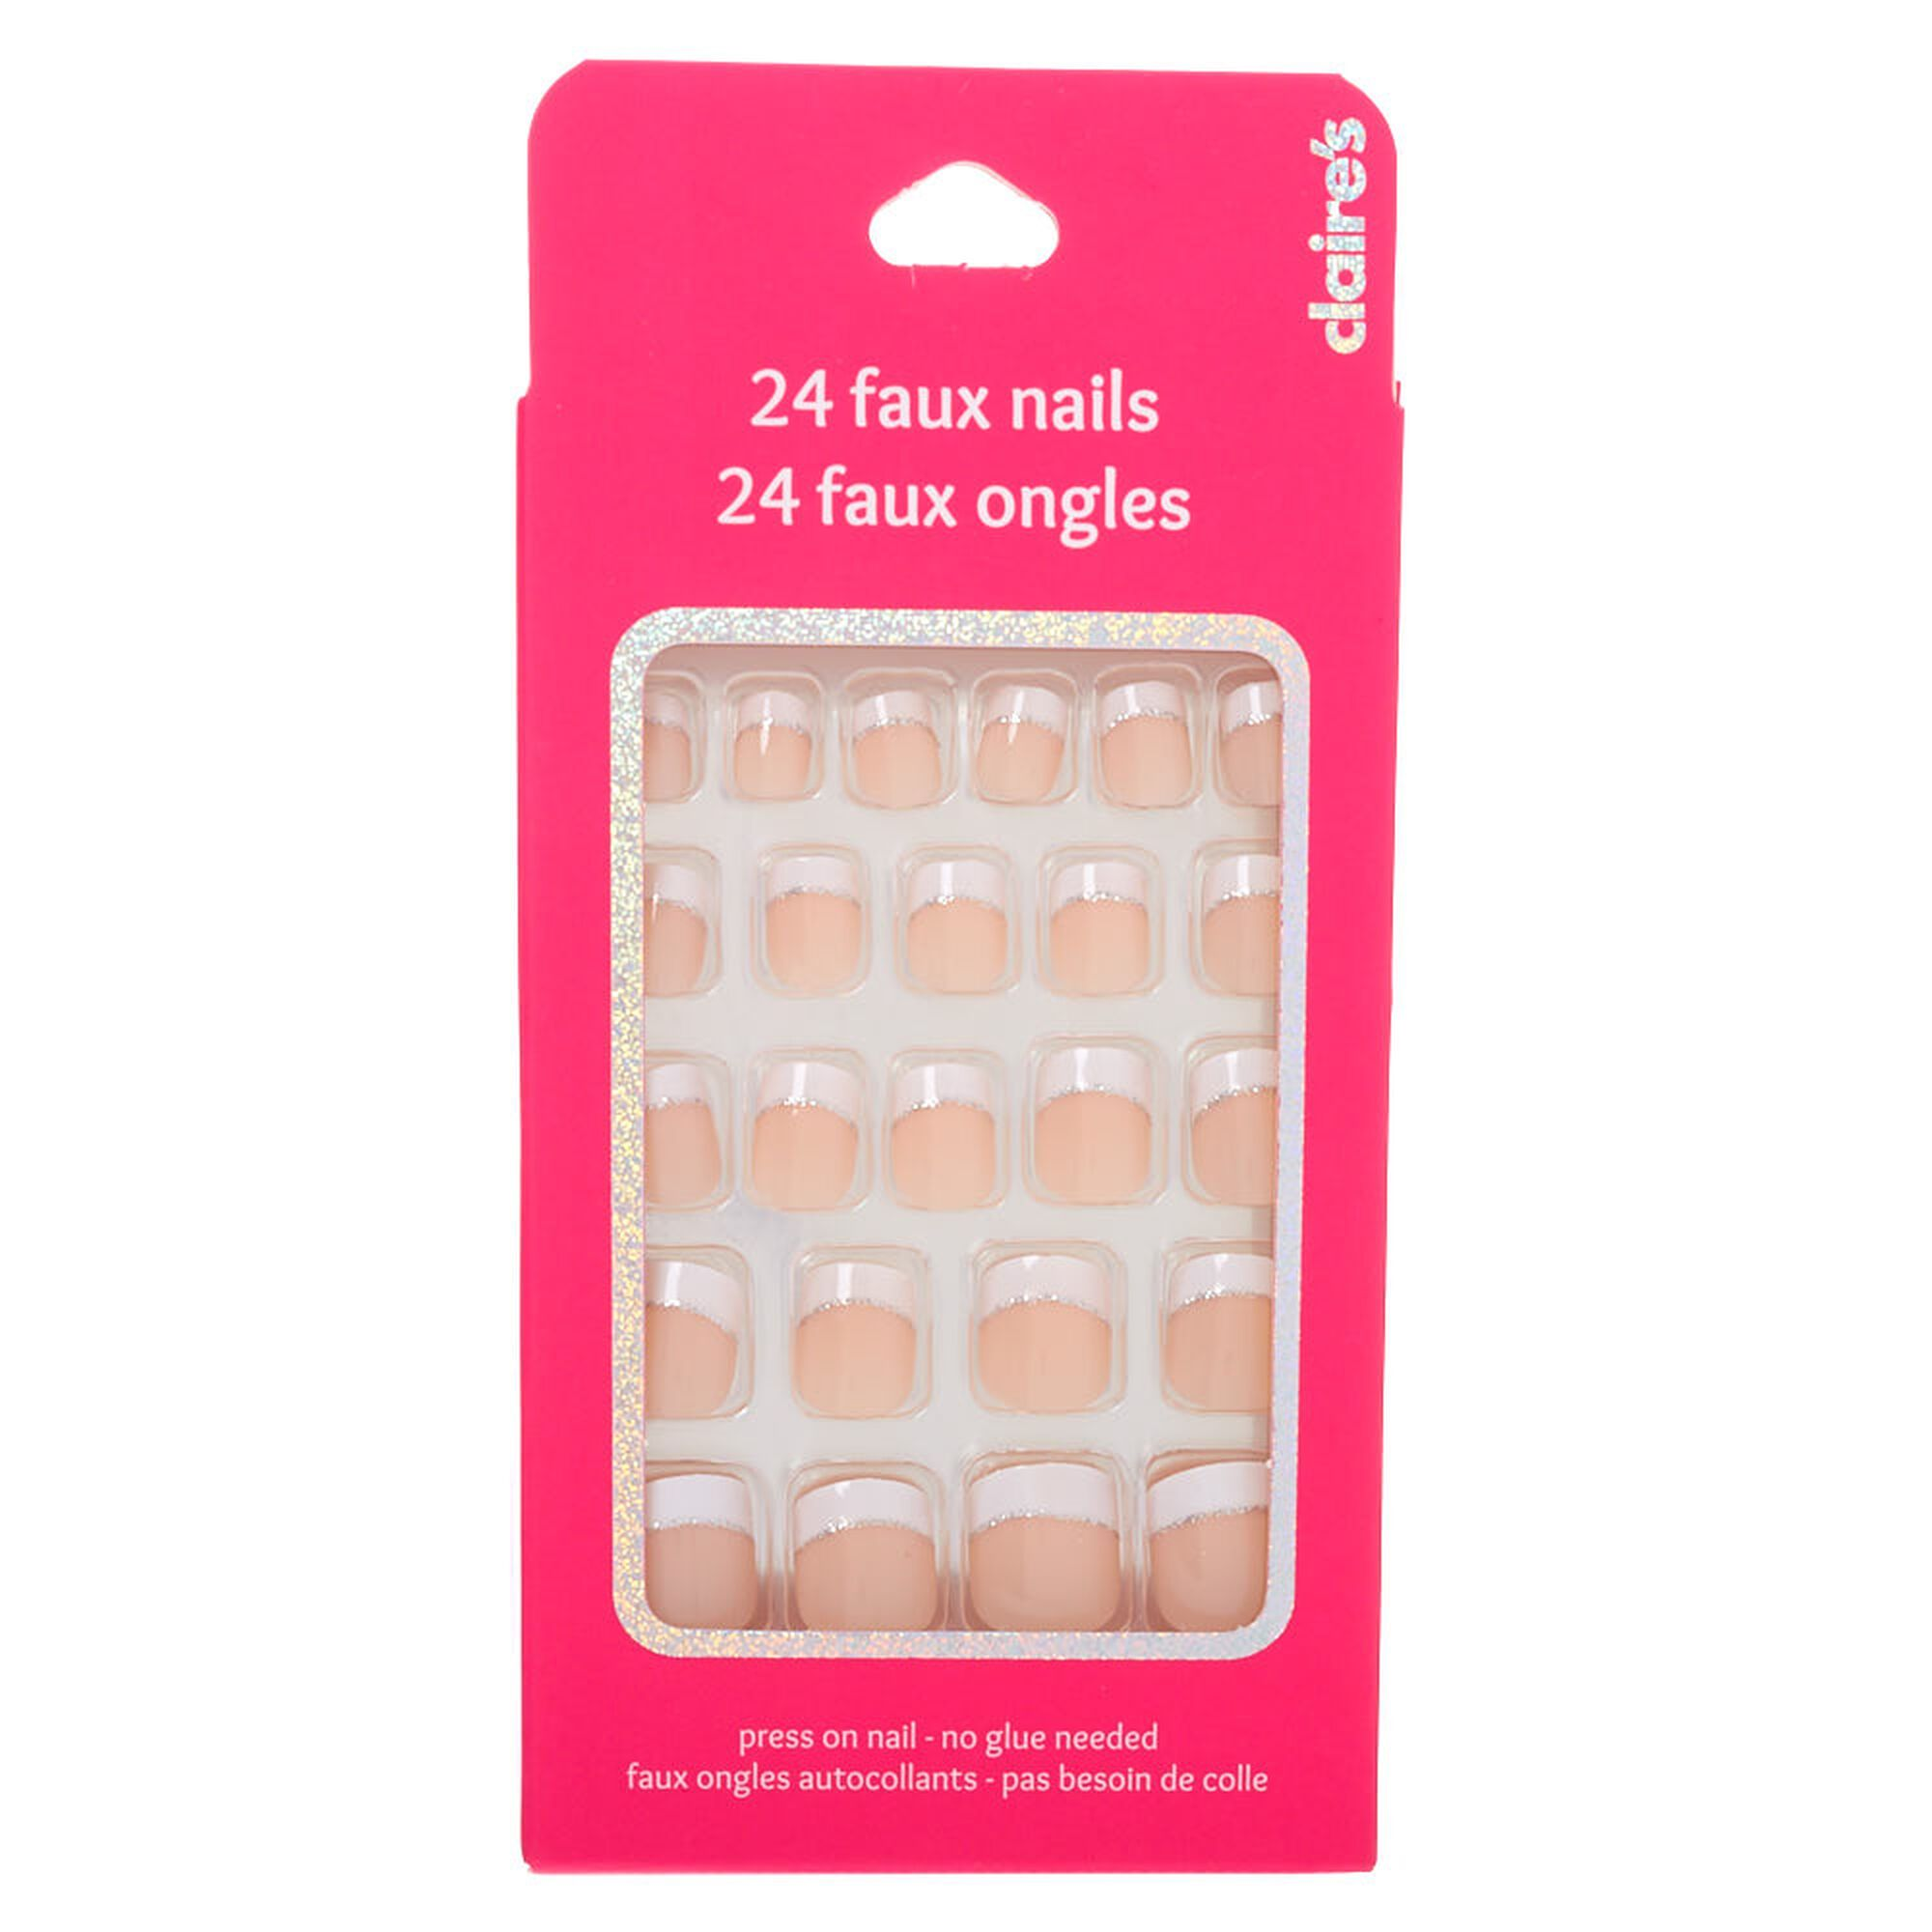 French Manicure With Glitter Accent Square Press On Faux Nail Set 24 Pack Glitter French Manicure Fake Nails French Fake Nails For Kids